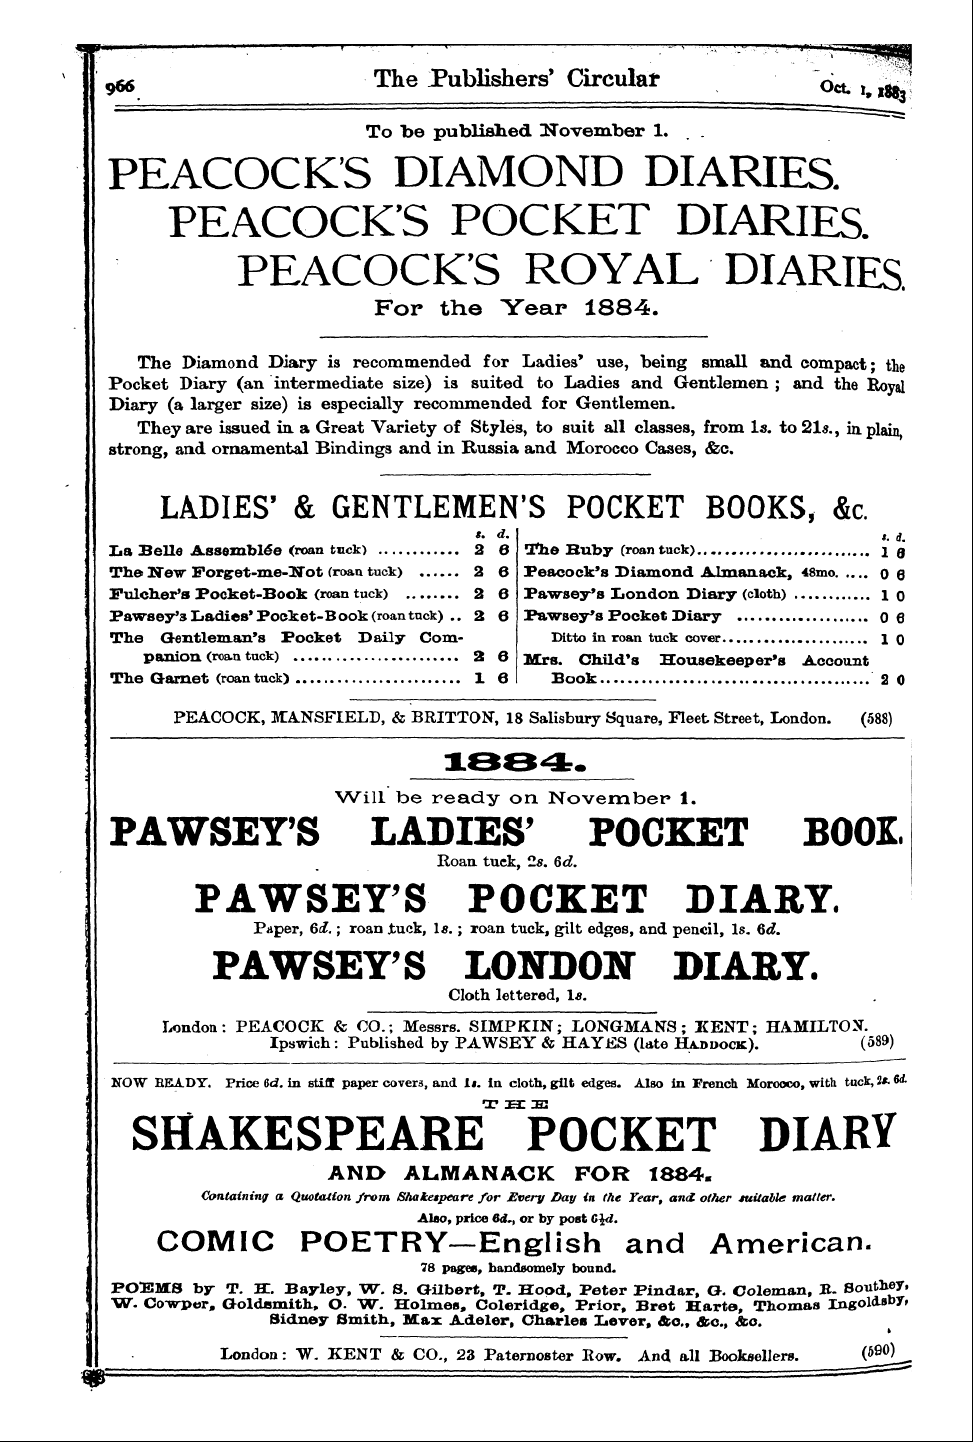 Publishers' Circular (1880-1890), 1st October 1883, Edition 1 of 1